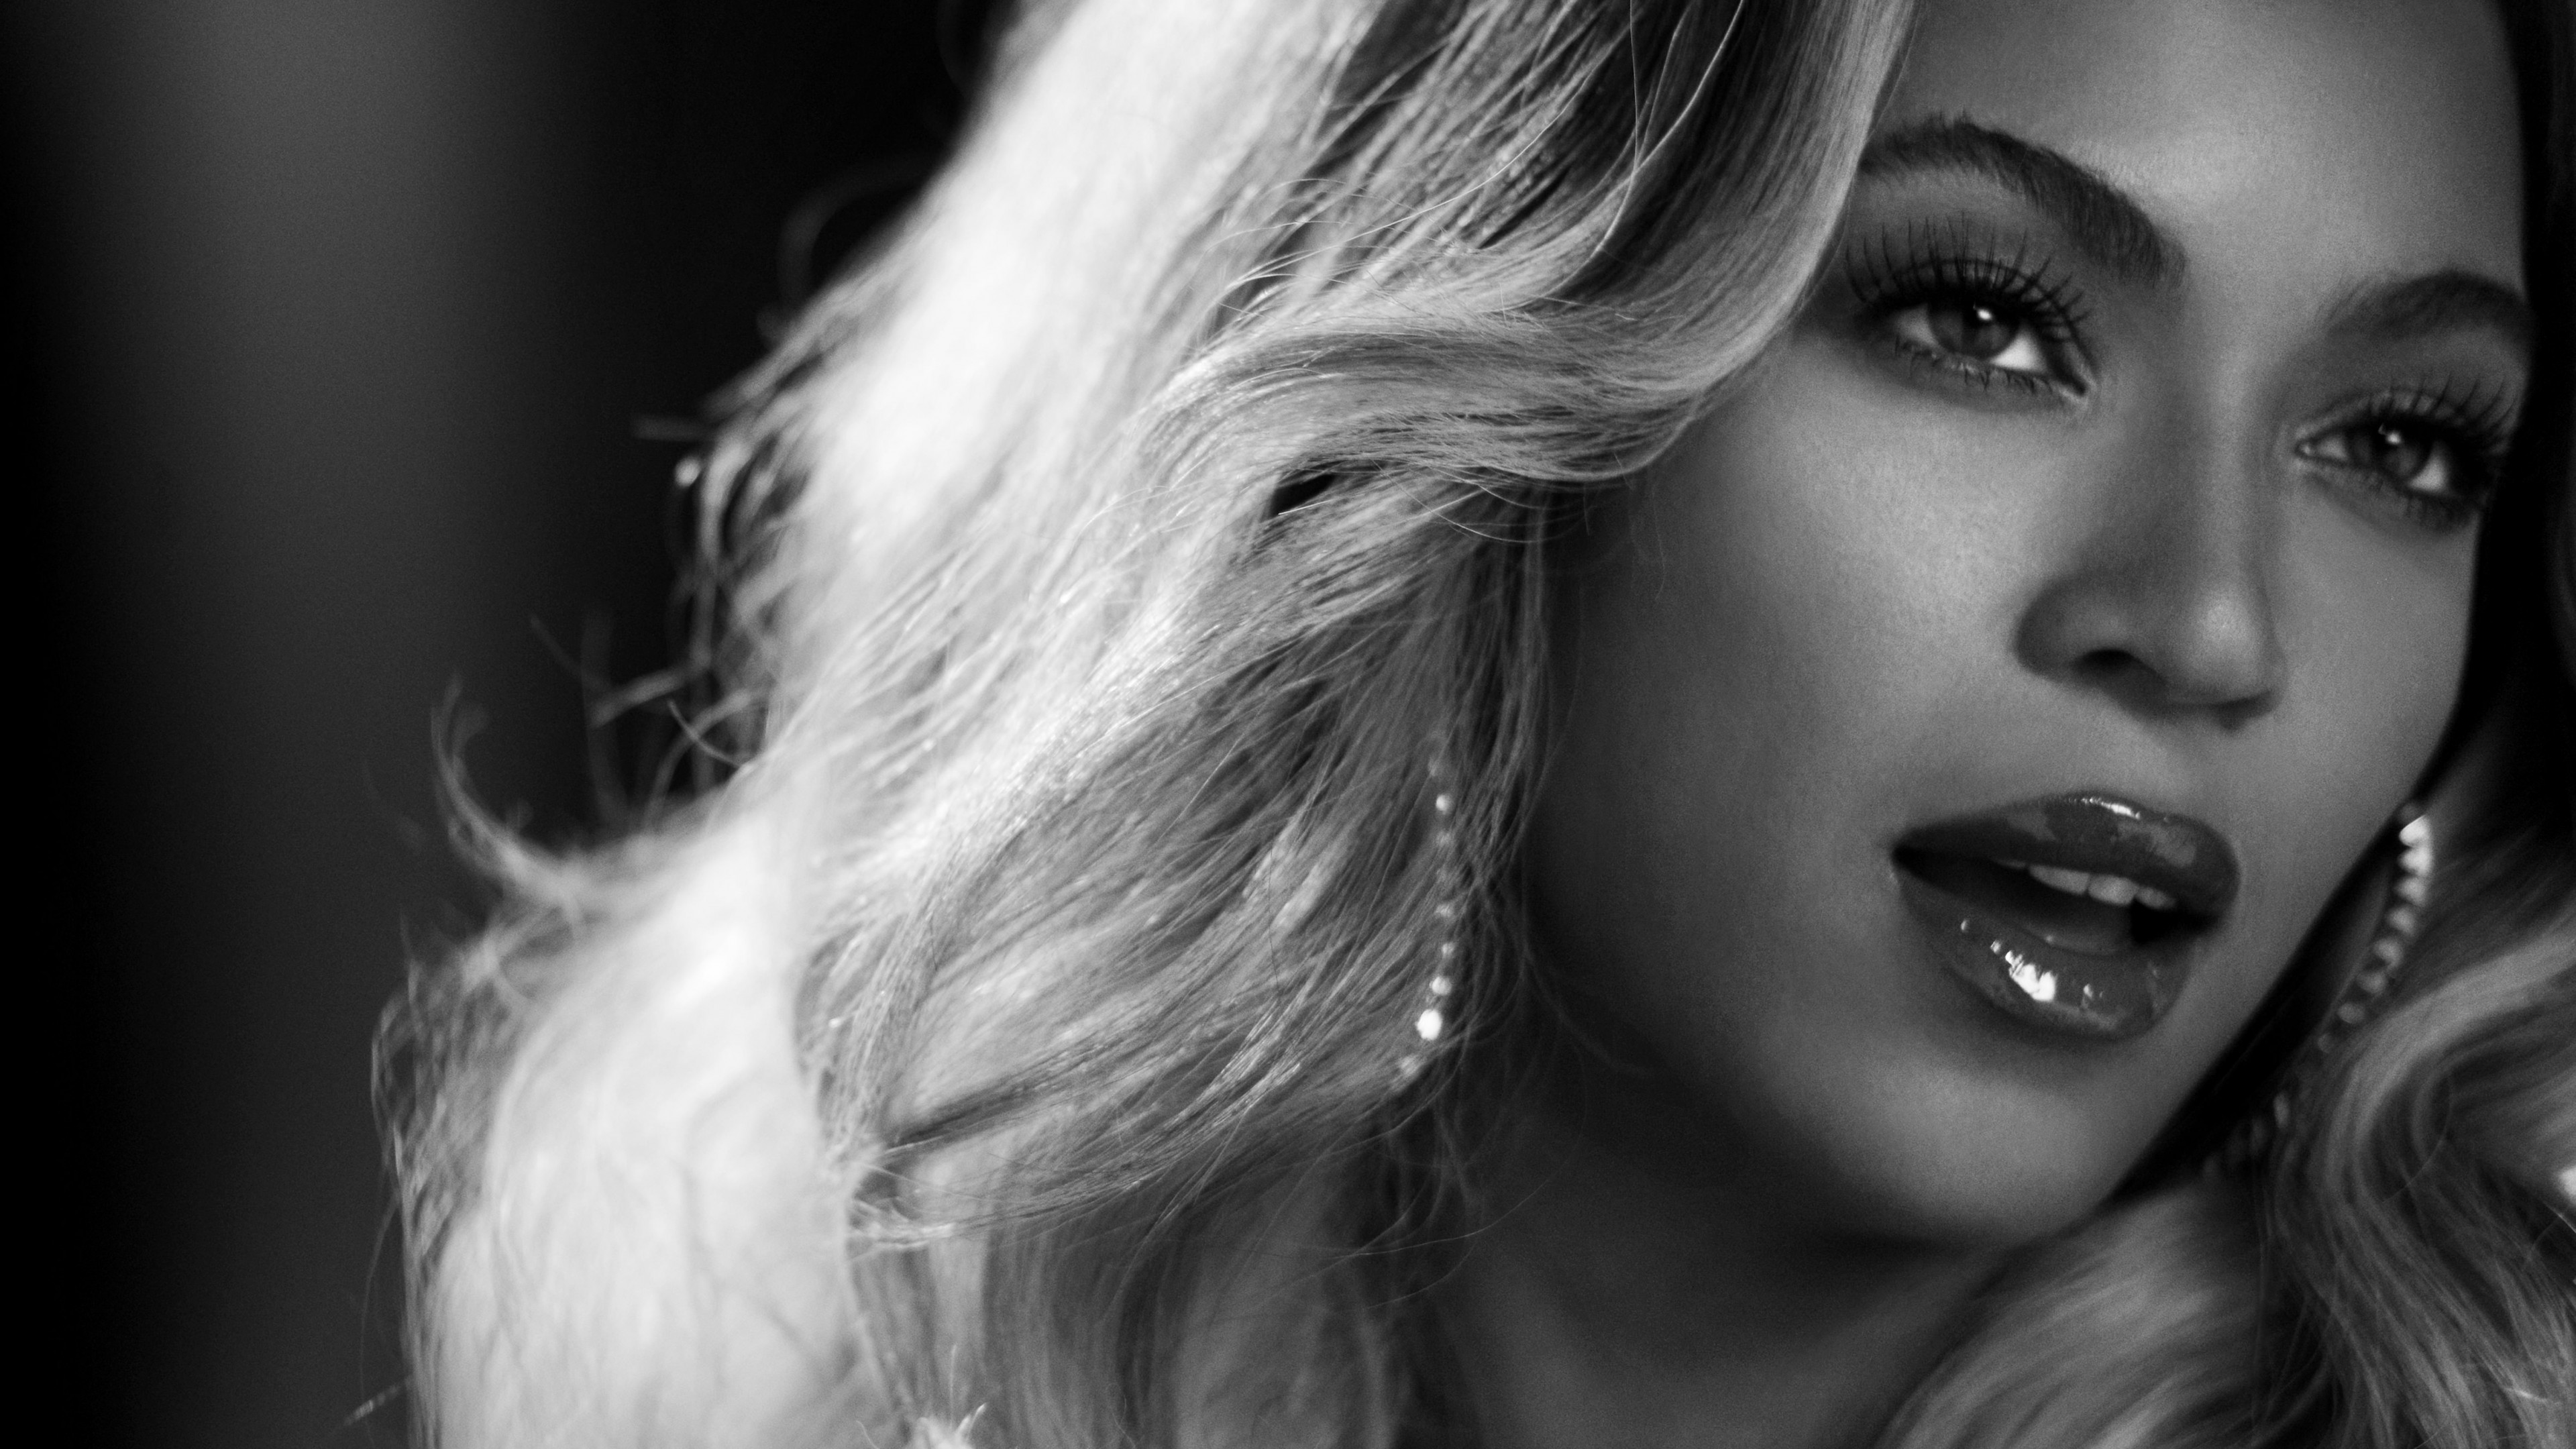 Beyonce in Black and White 4K wallpaper